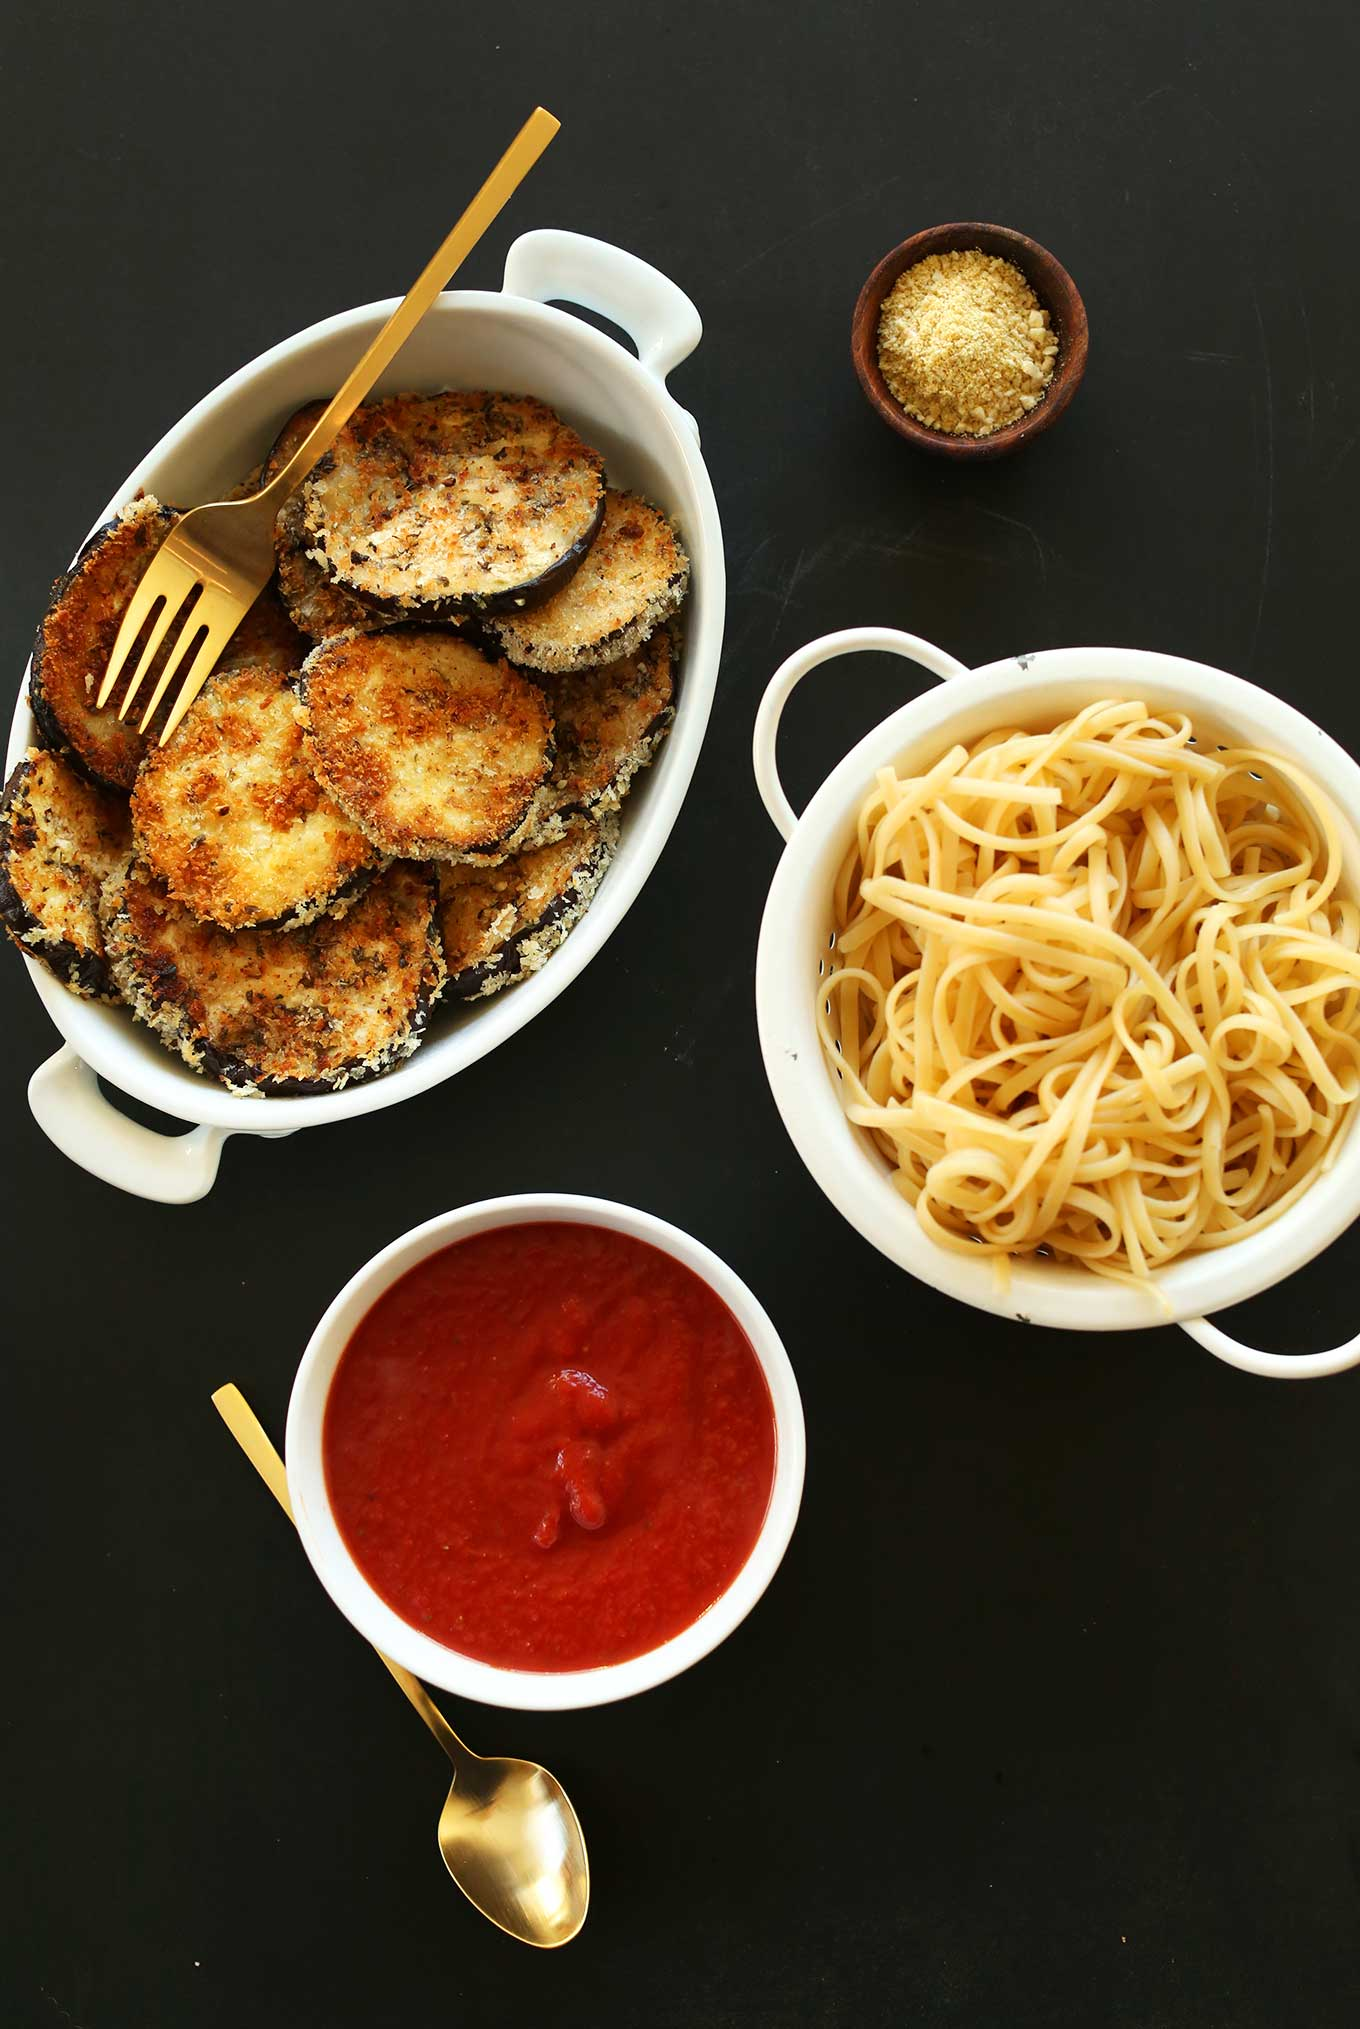 Dishes of marinara, pasta, vegan parmesan, and vegan eggplant parmesan for a comforting meal